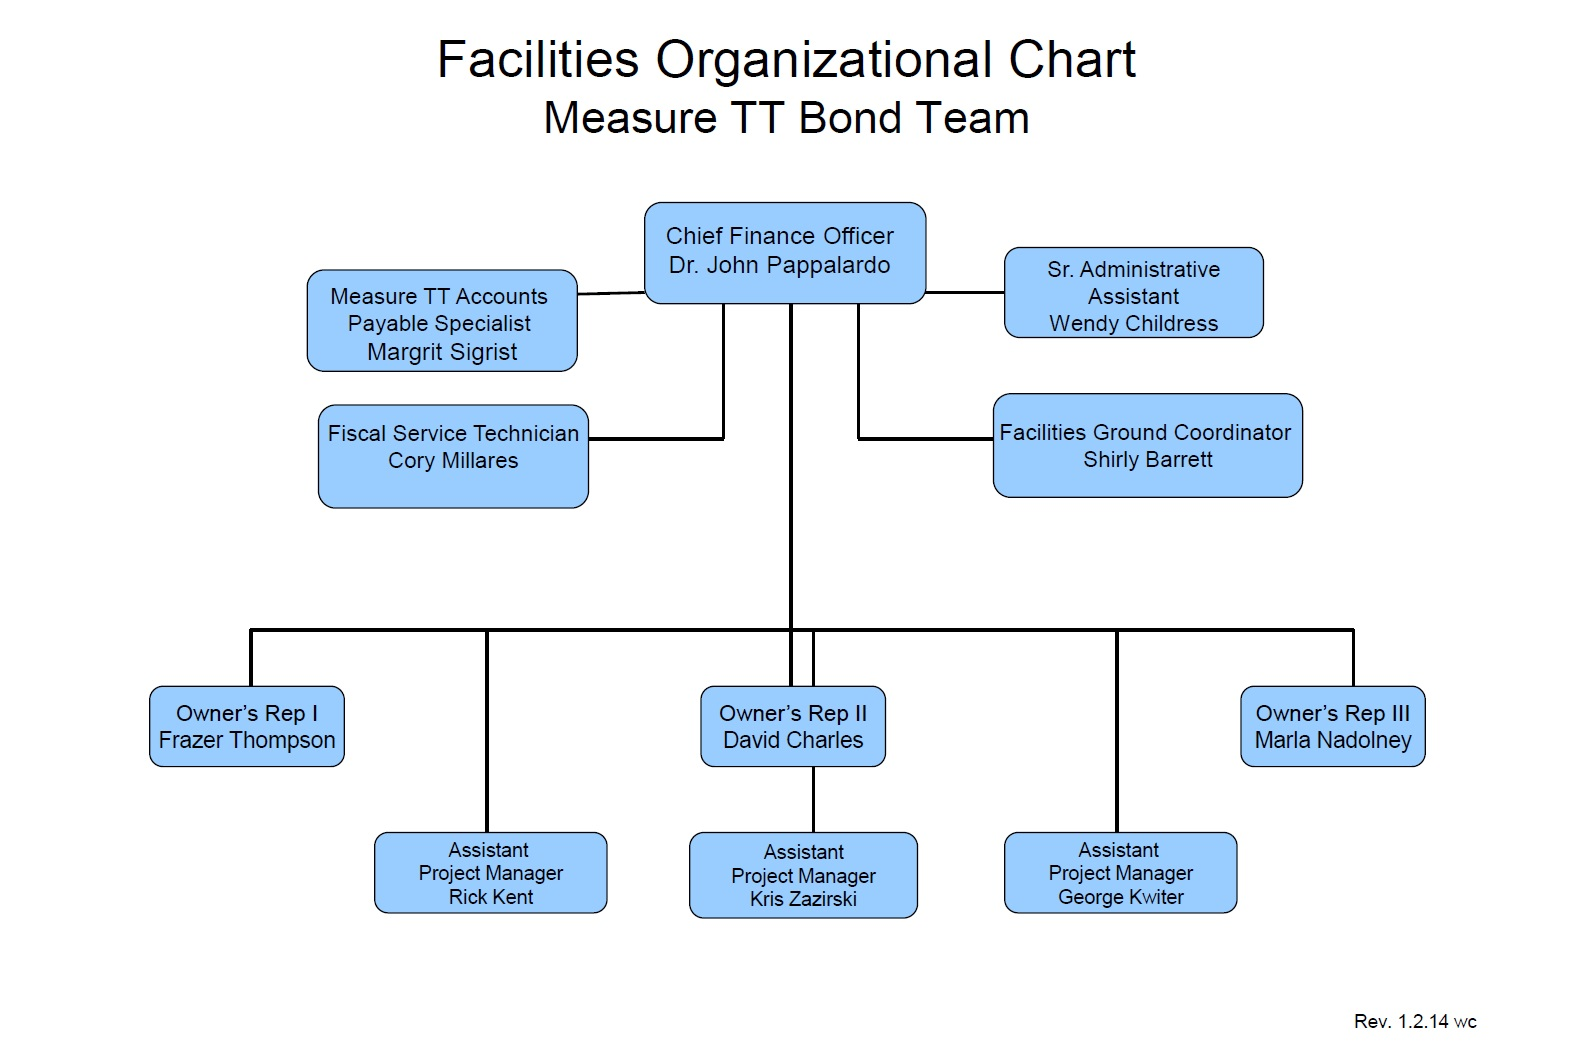 Facilities Organizational Measure TT Bond Team Chart